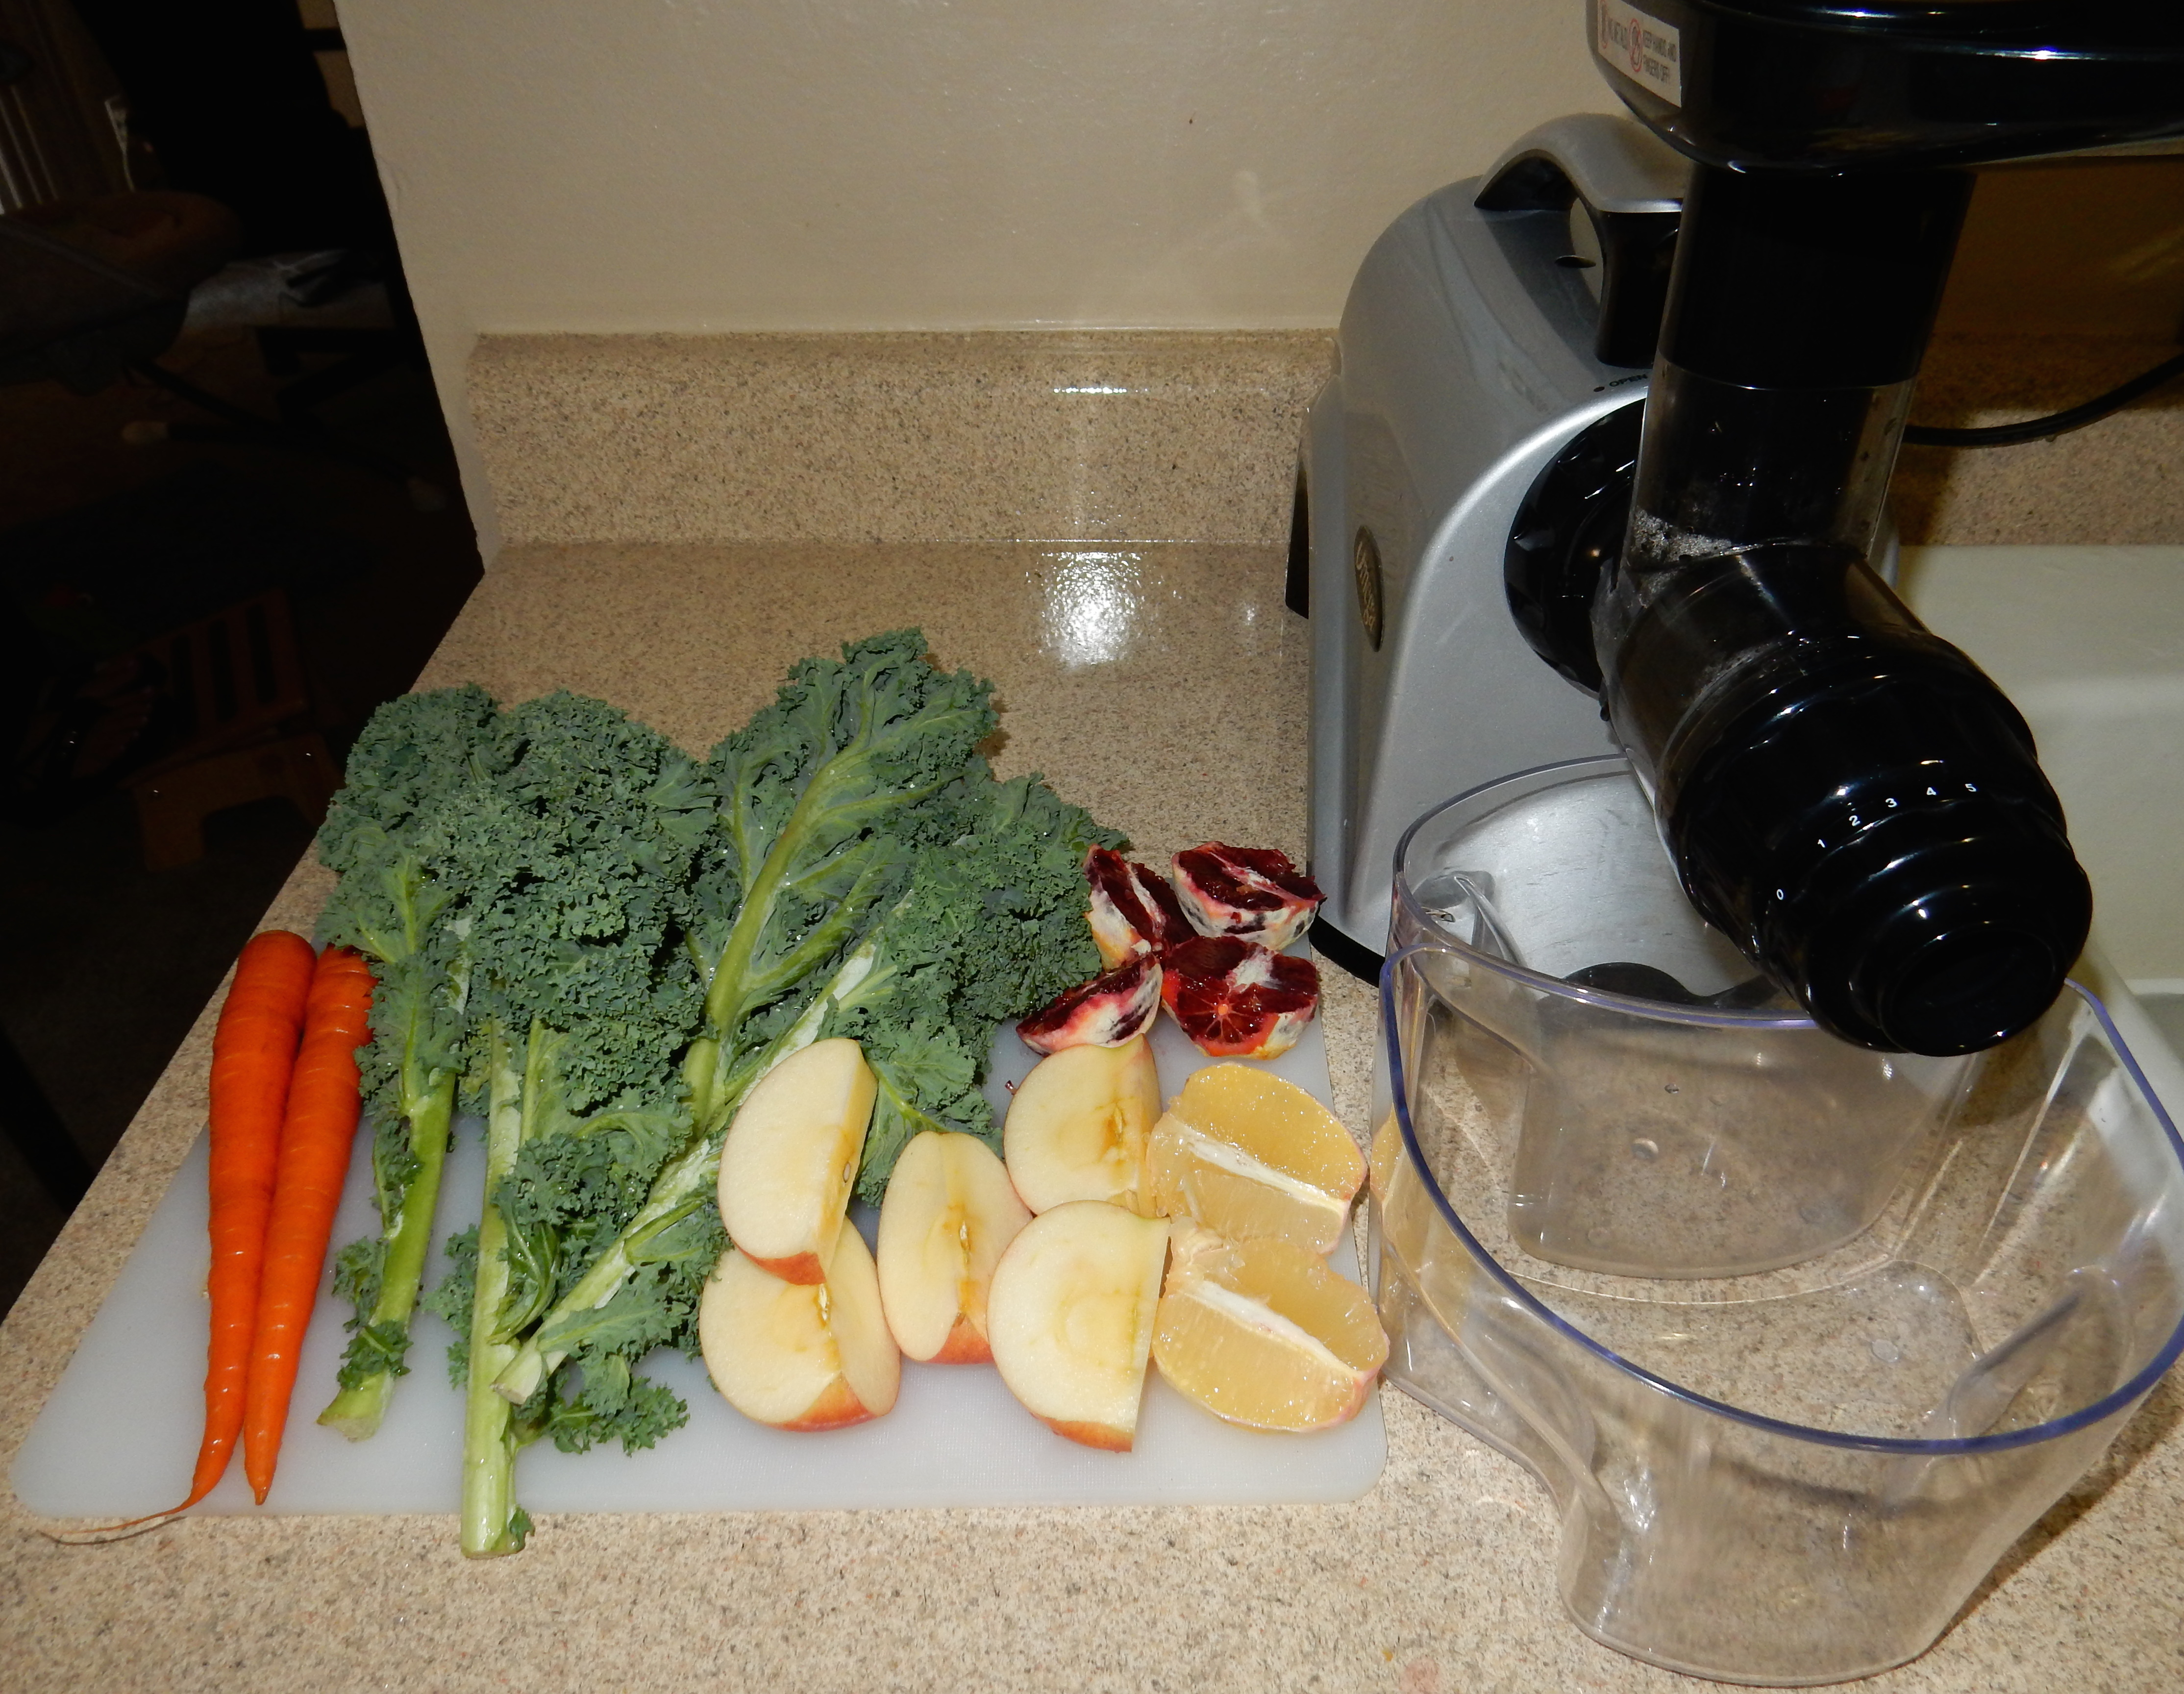 Blood-Kale-Juice-Prepared-Omega-NC800-HDS-silver